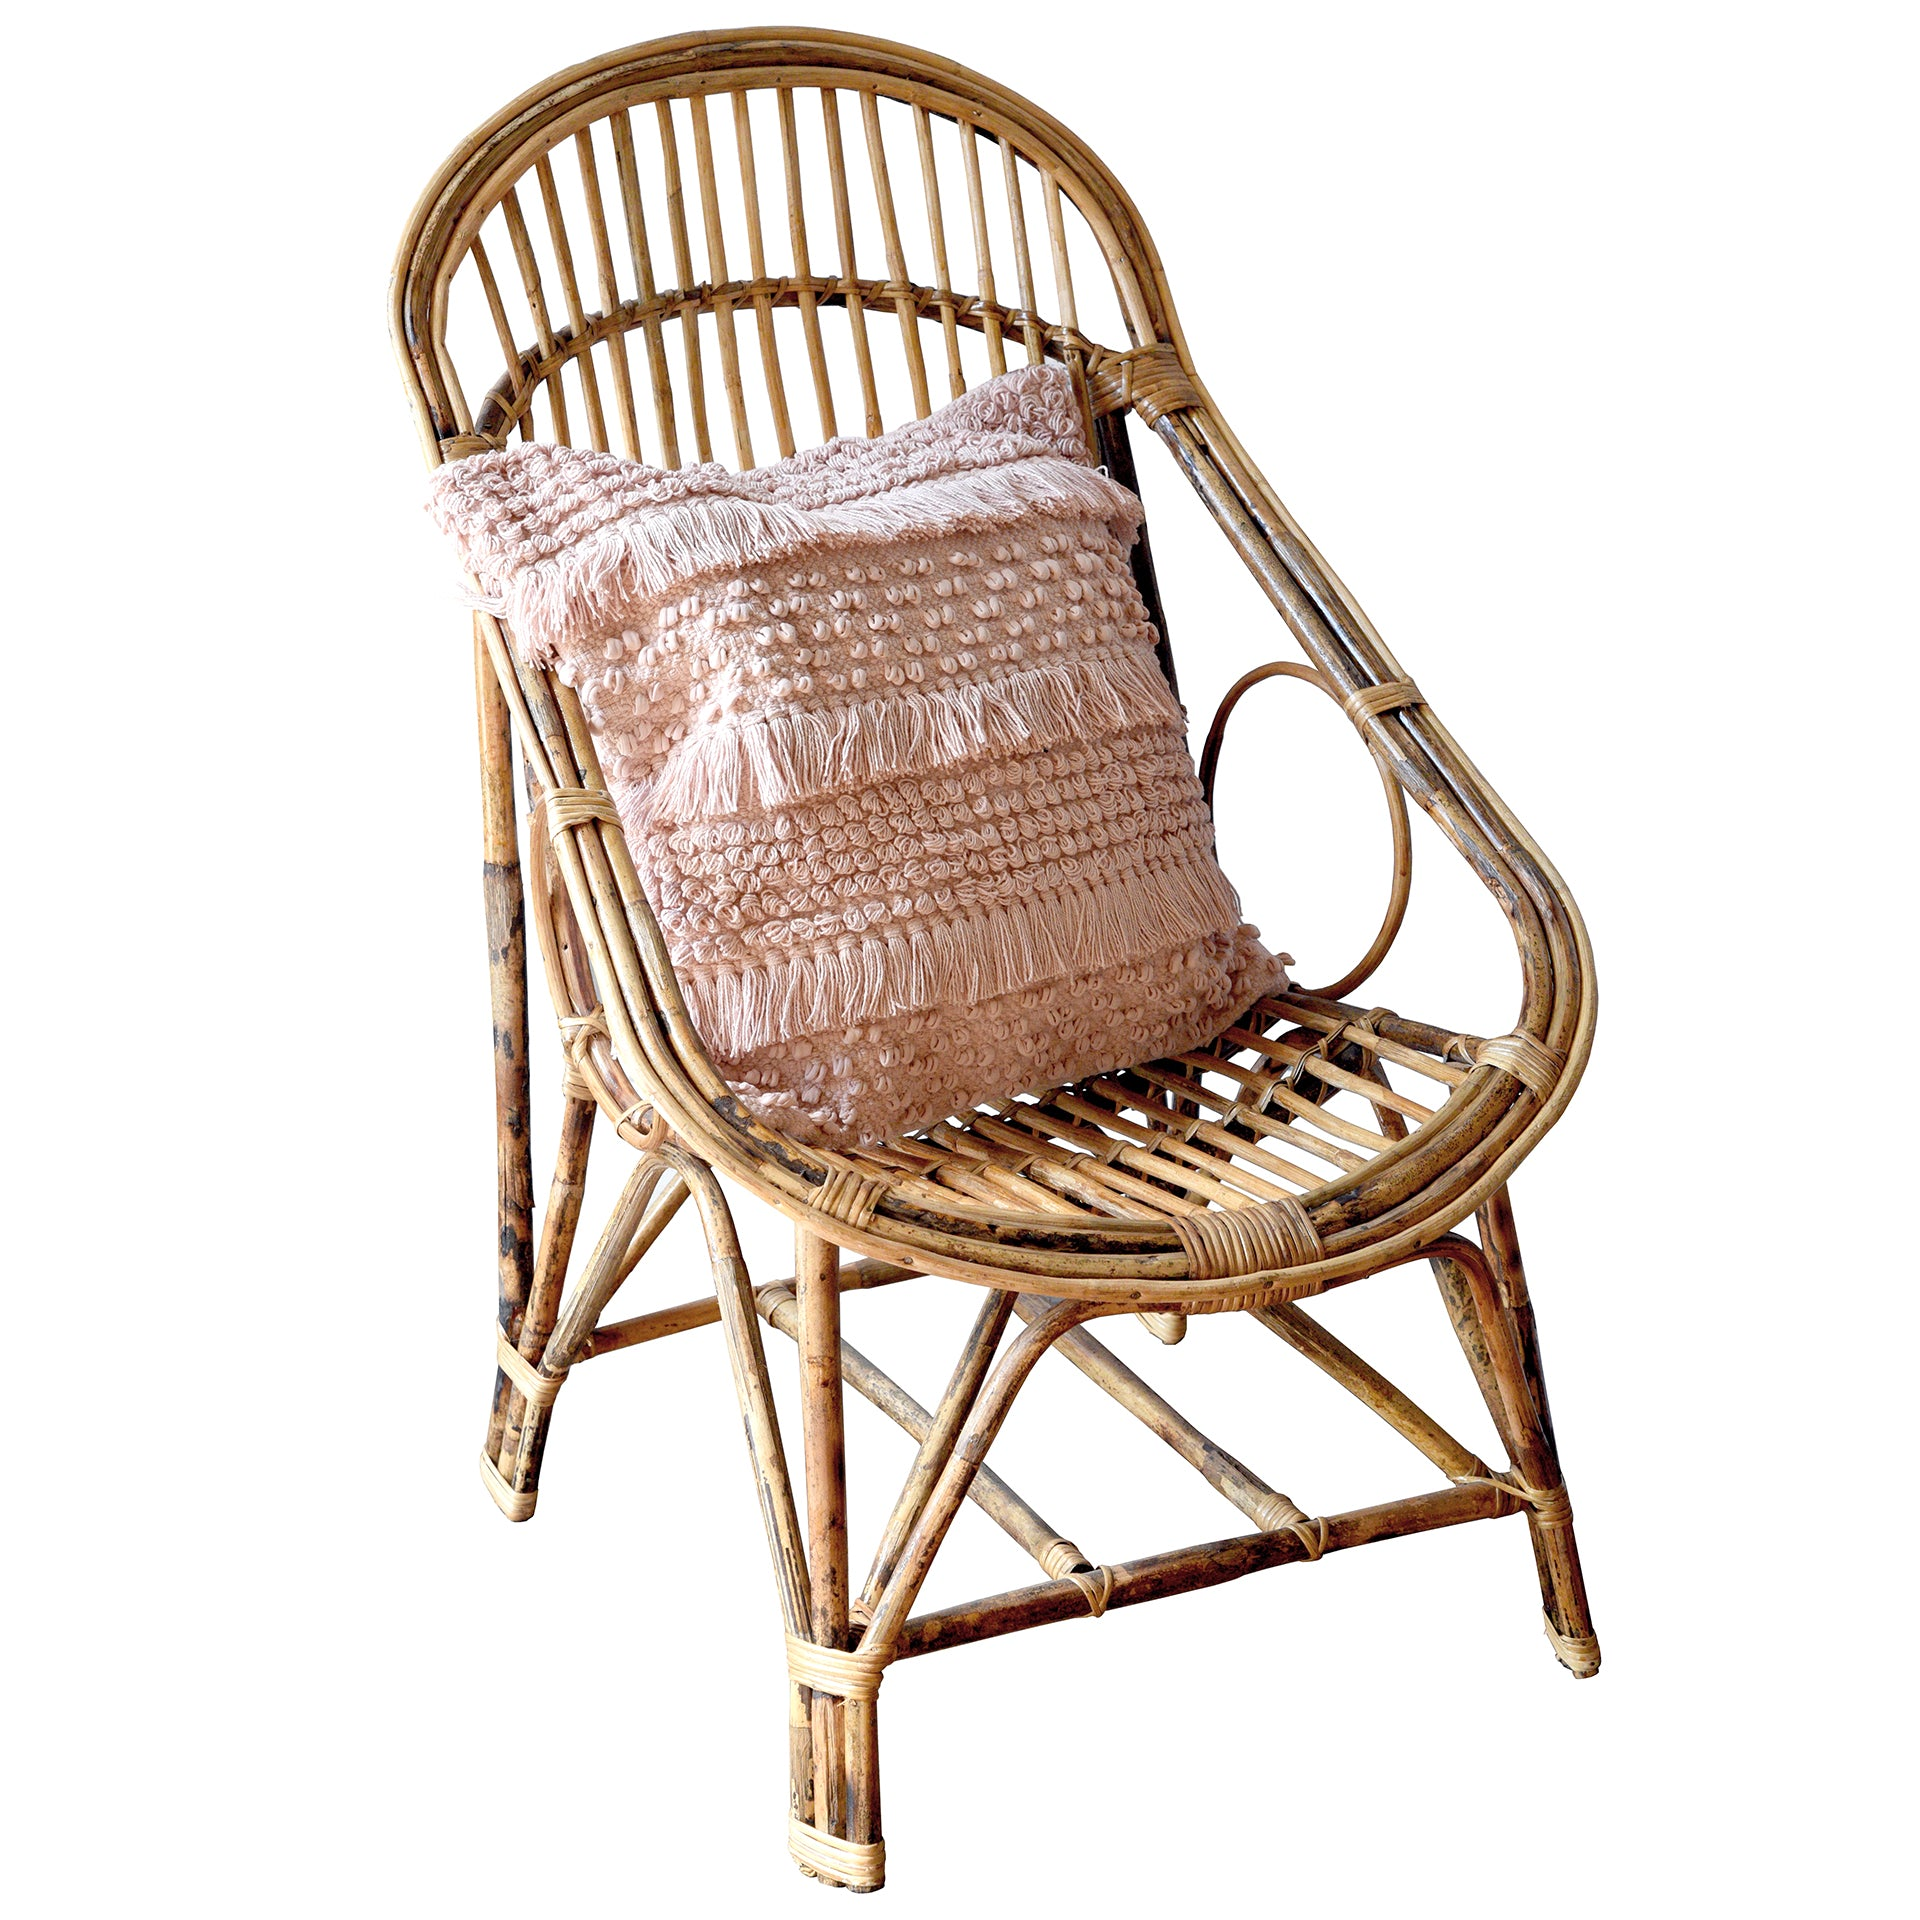 Boho Wicker Rattan Cane Chair